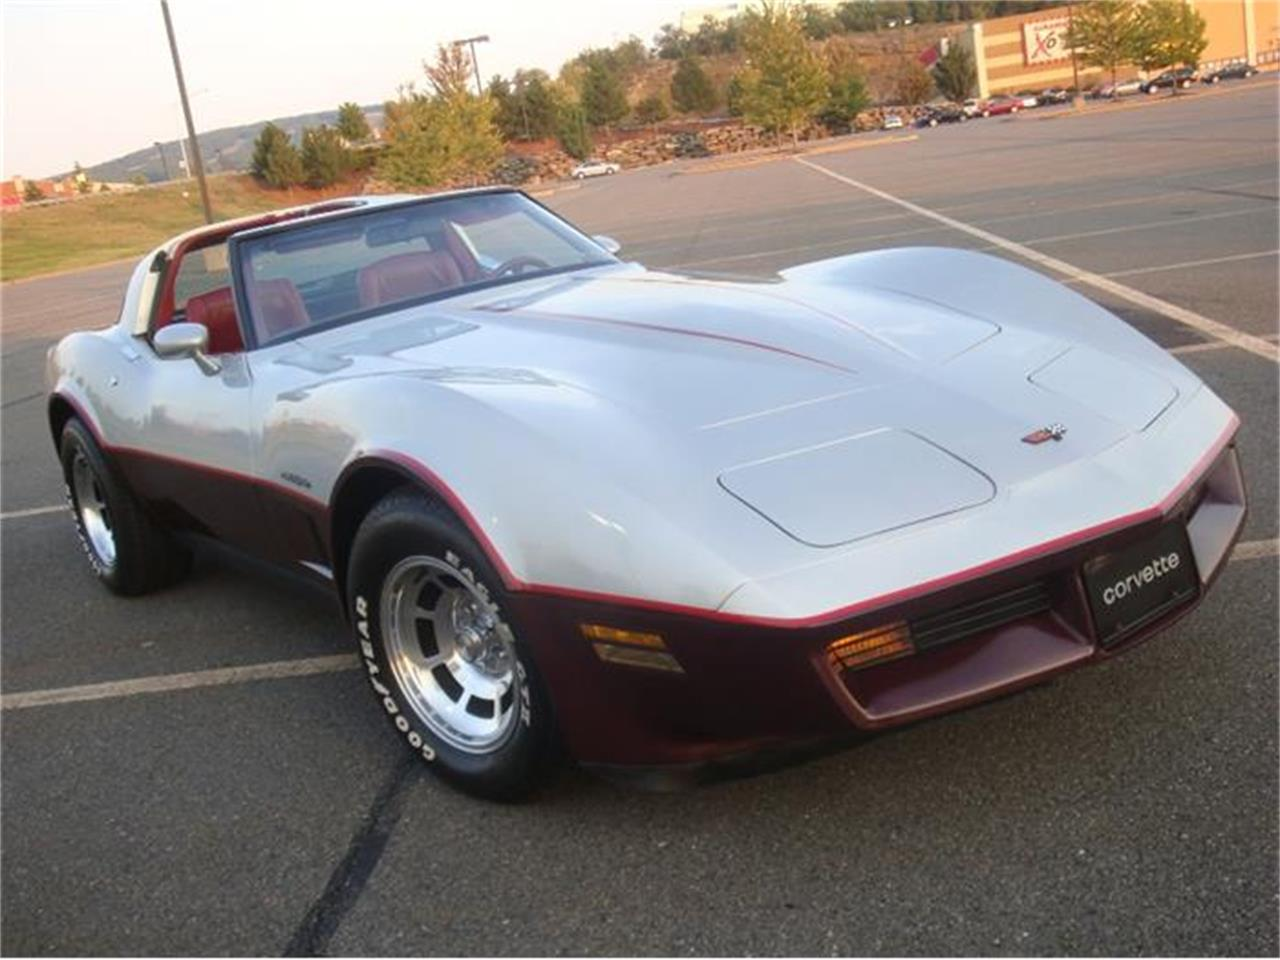 Large Picture of '82 Chevrolet Corvette located in Old Forge Pennsylvania - DL5R